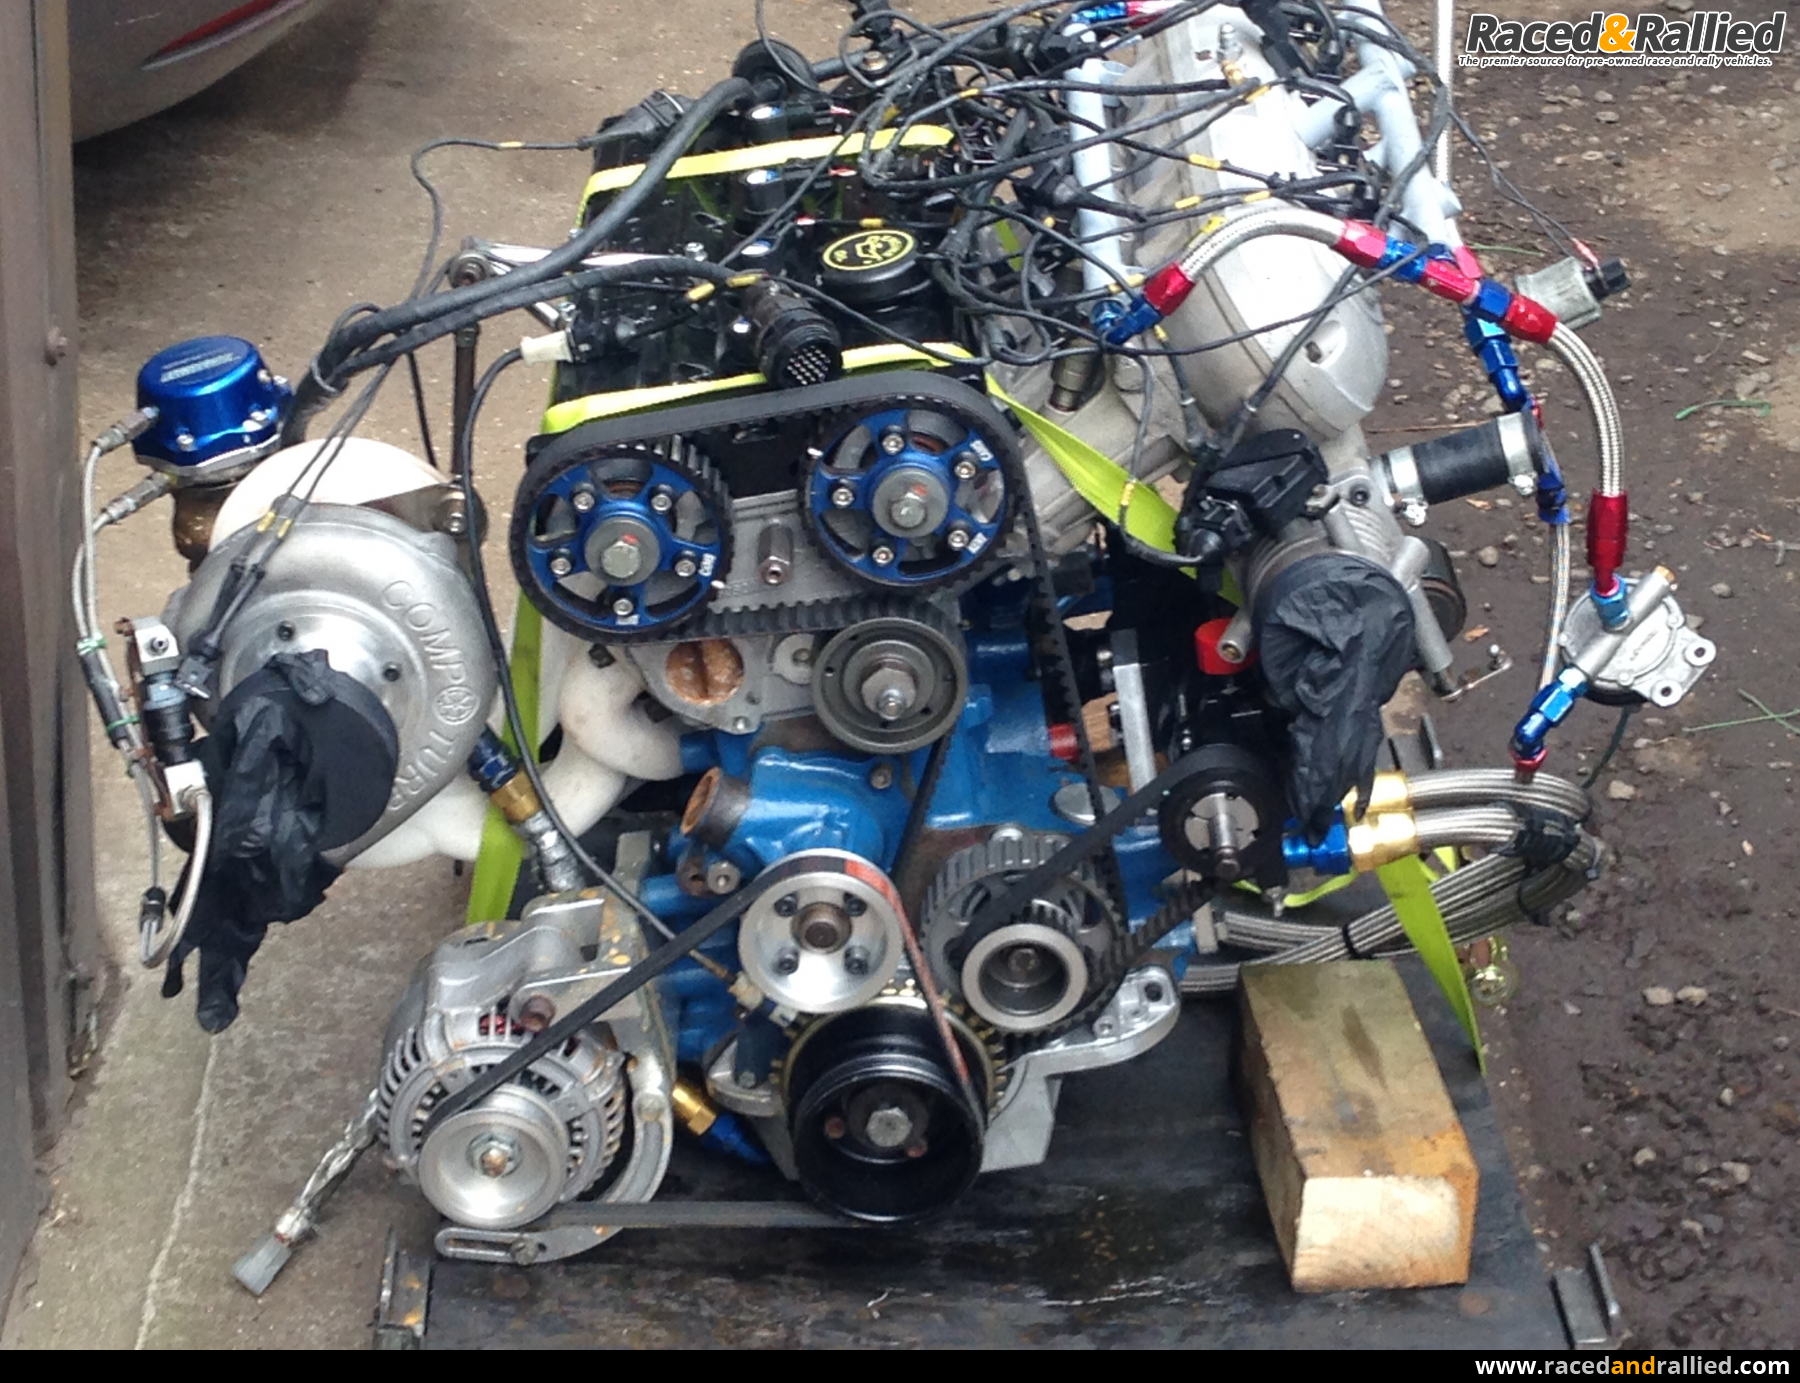 Rally Car Parts For Sale At Raced